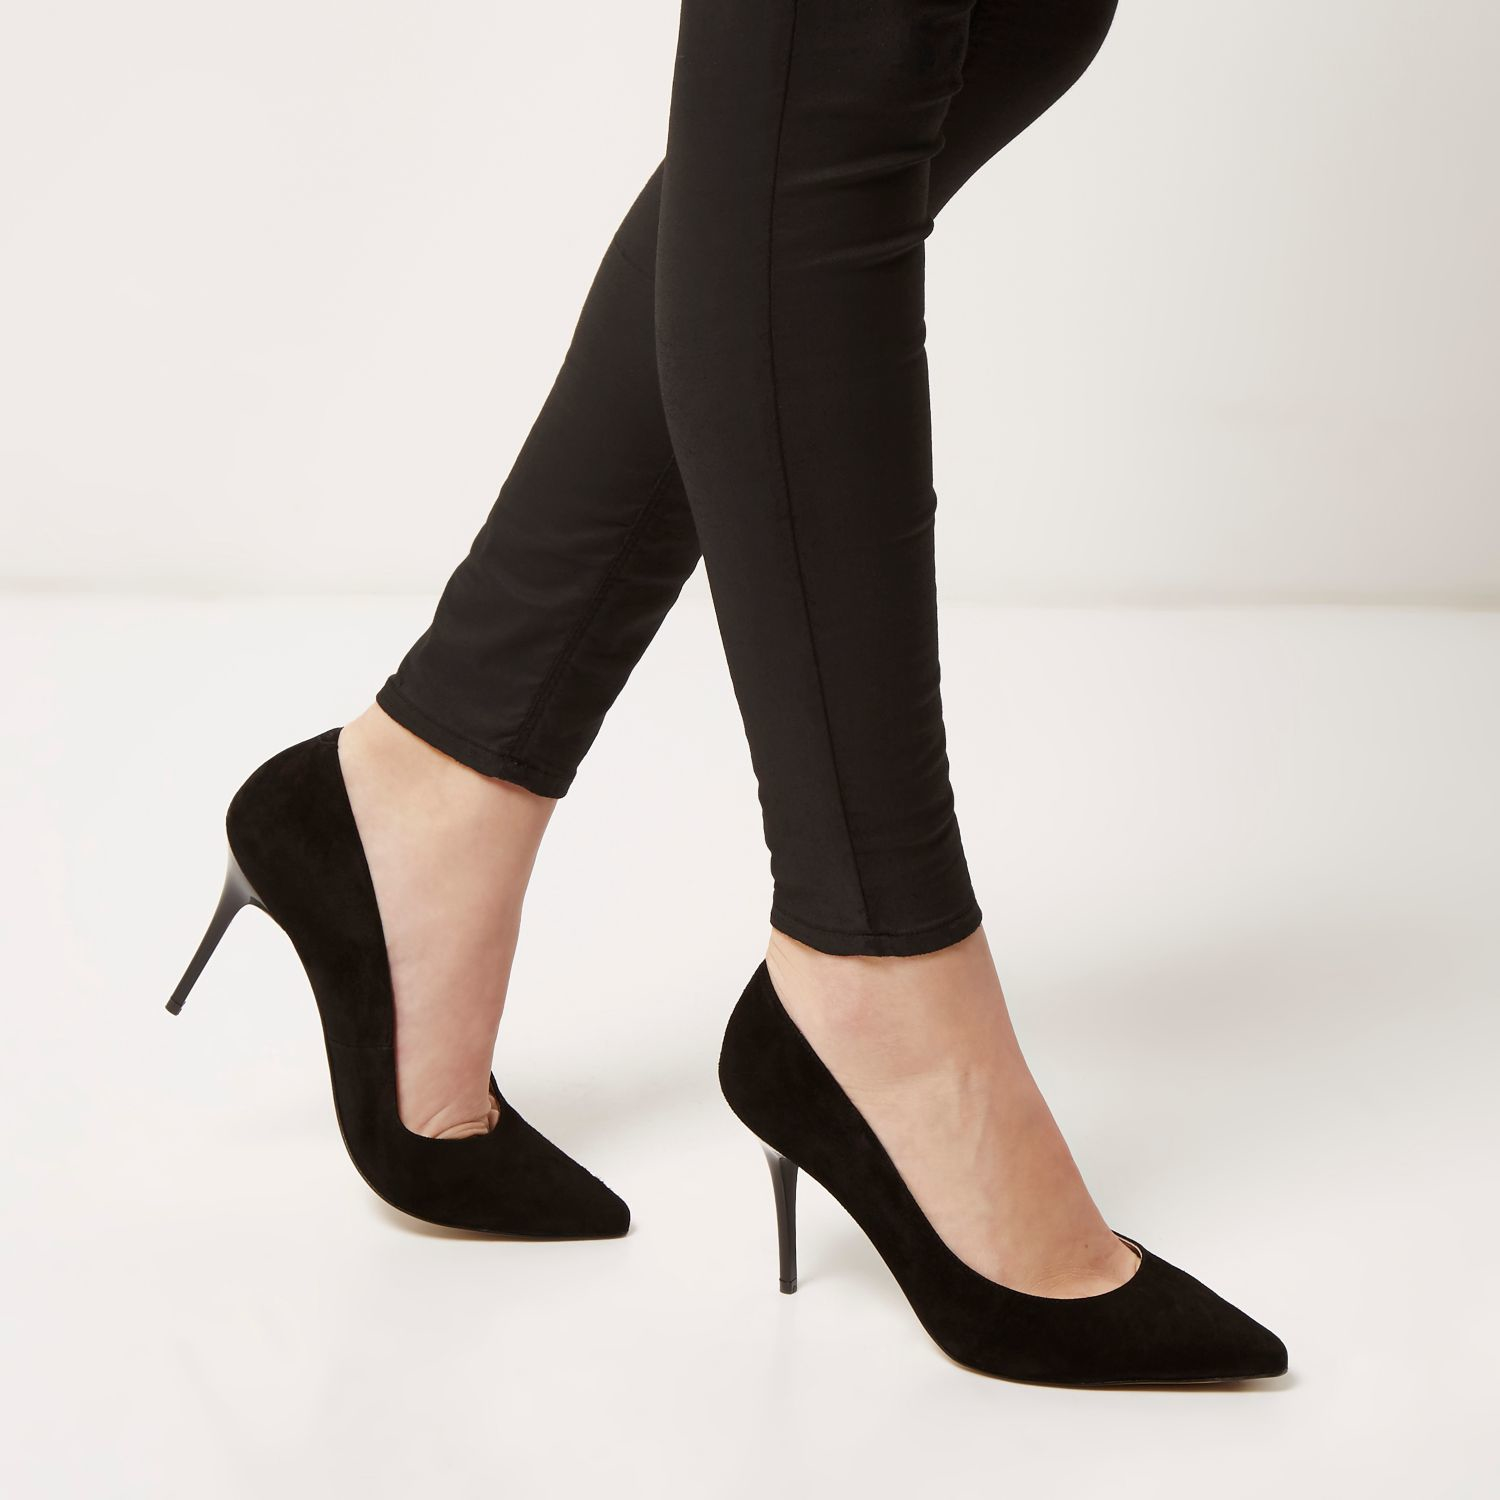 b83d776a1db2 Lyst - River Island Black Suede Pointed Mid Heel Court Shoes in Black